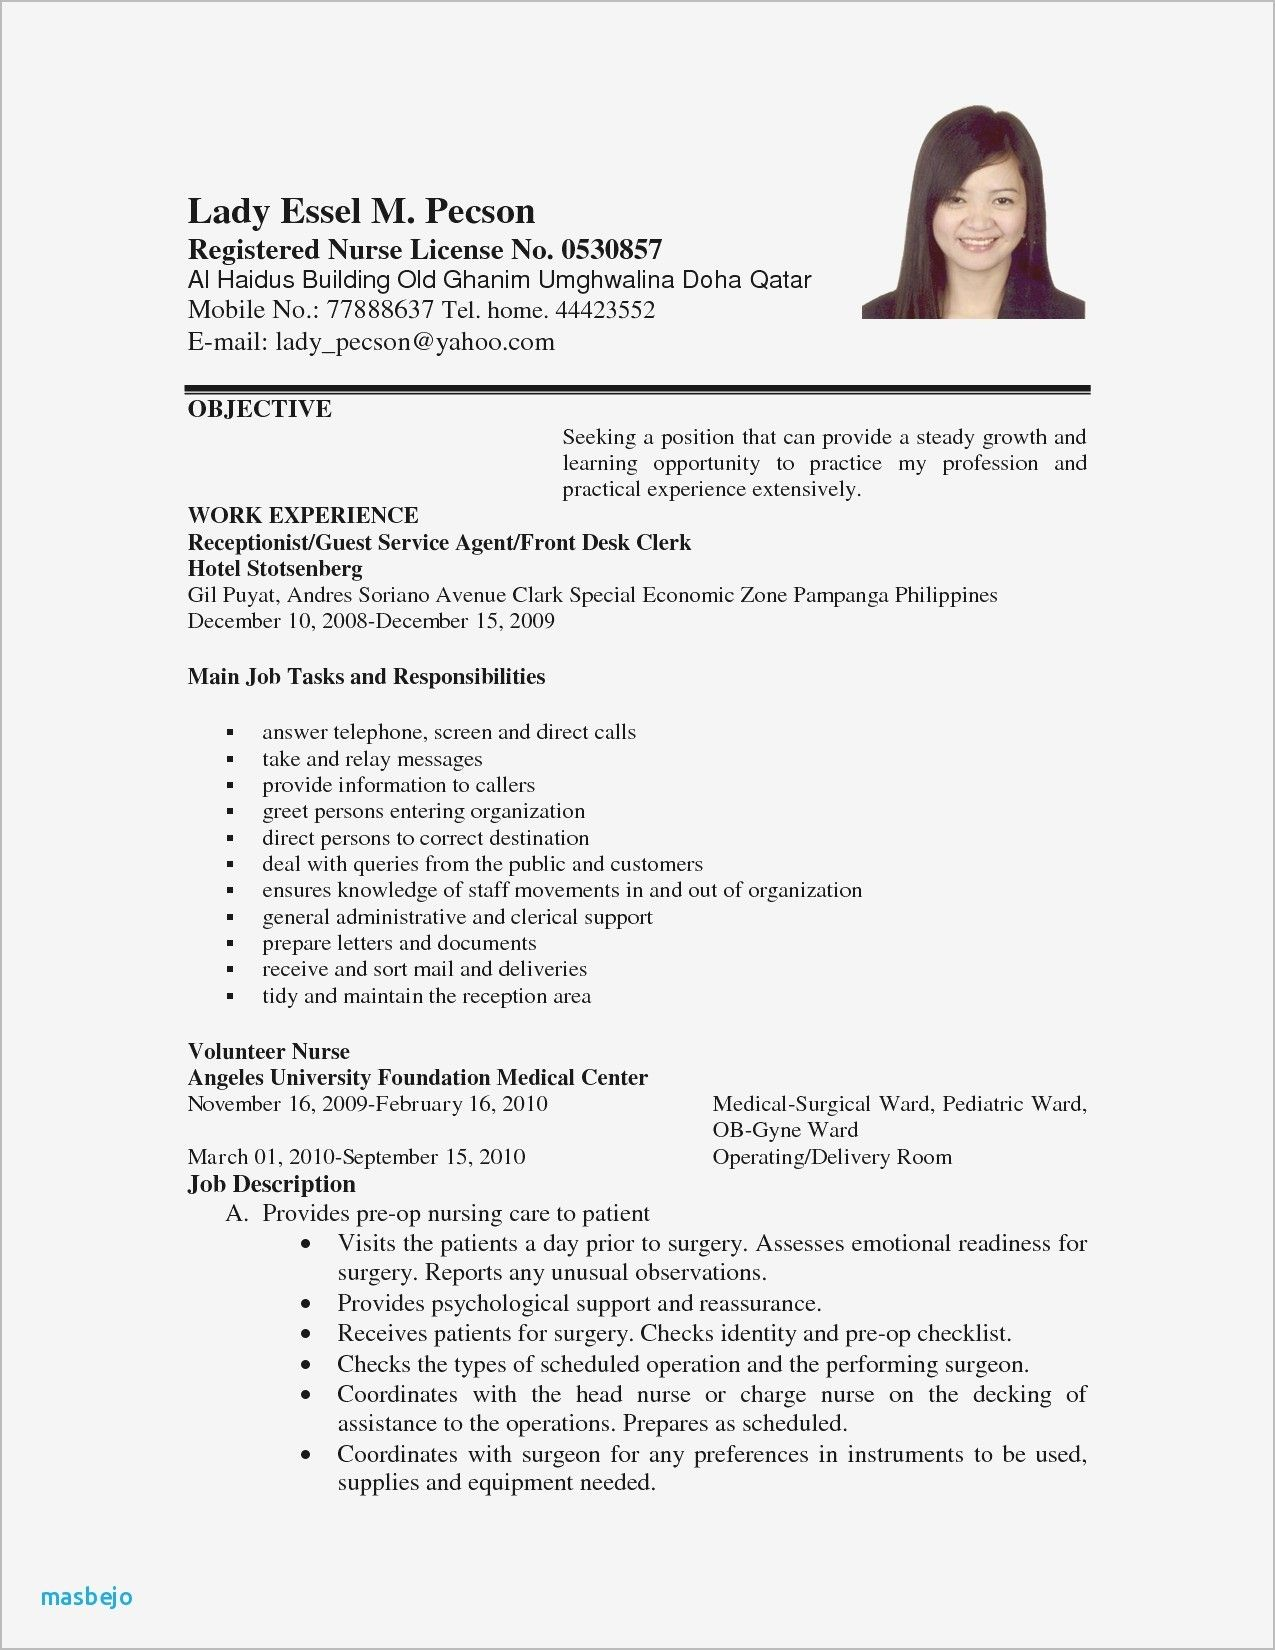 nurse resume samples philippines